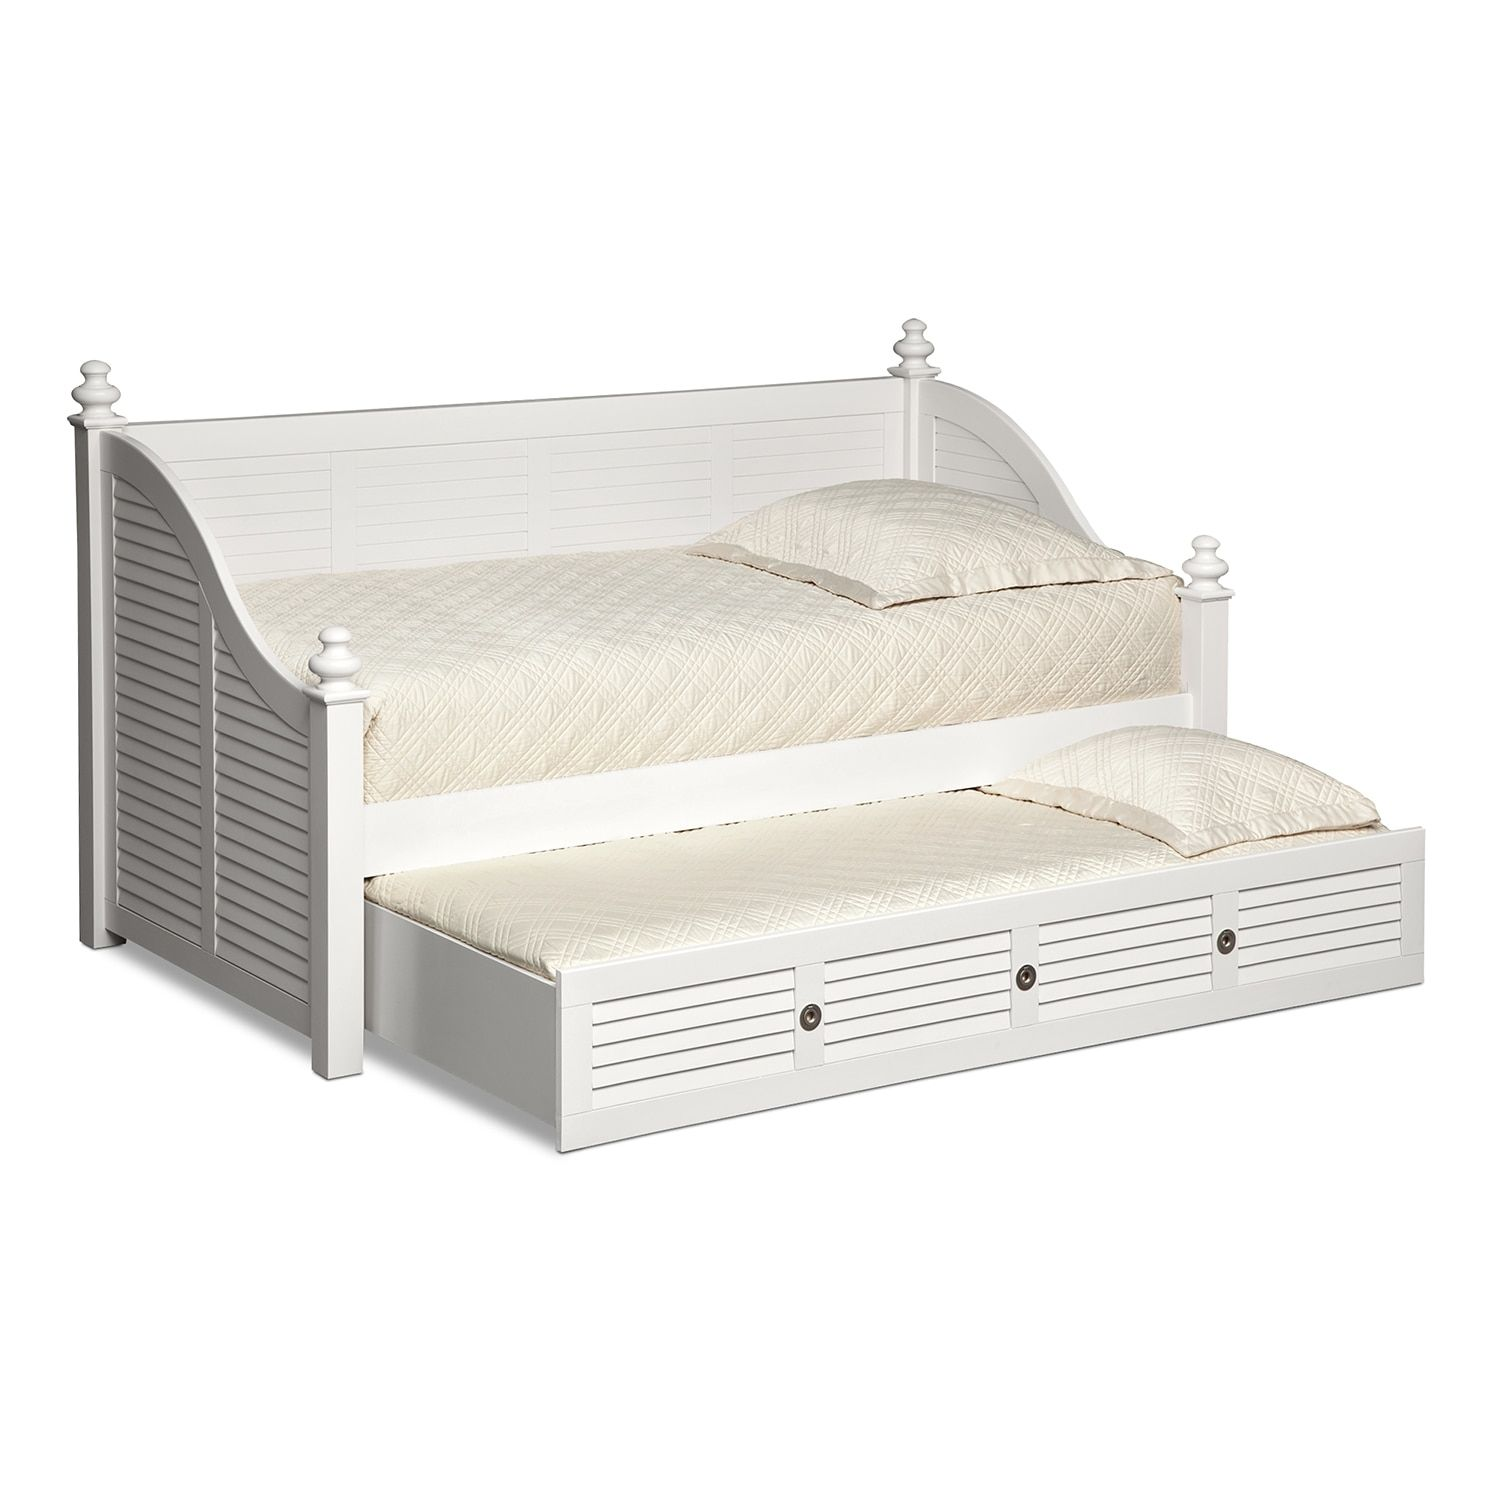 Seaside Twin Daybed With Trundle White Twin daybed